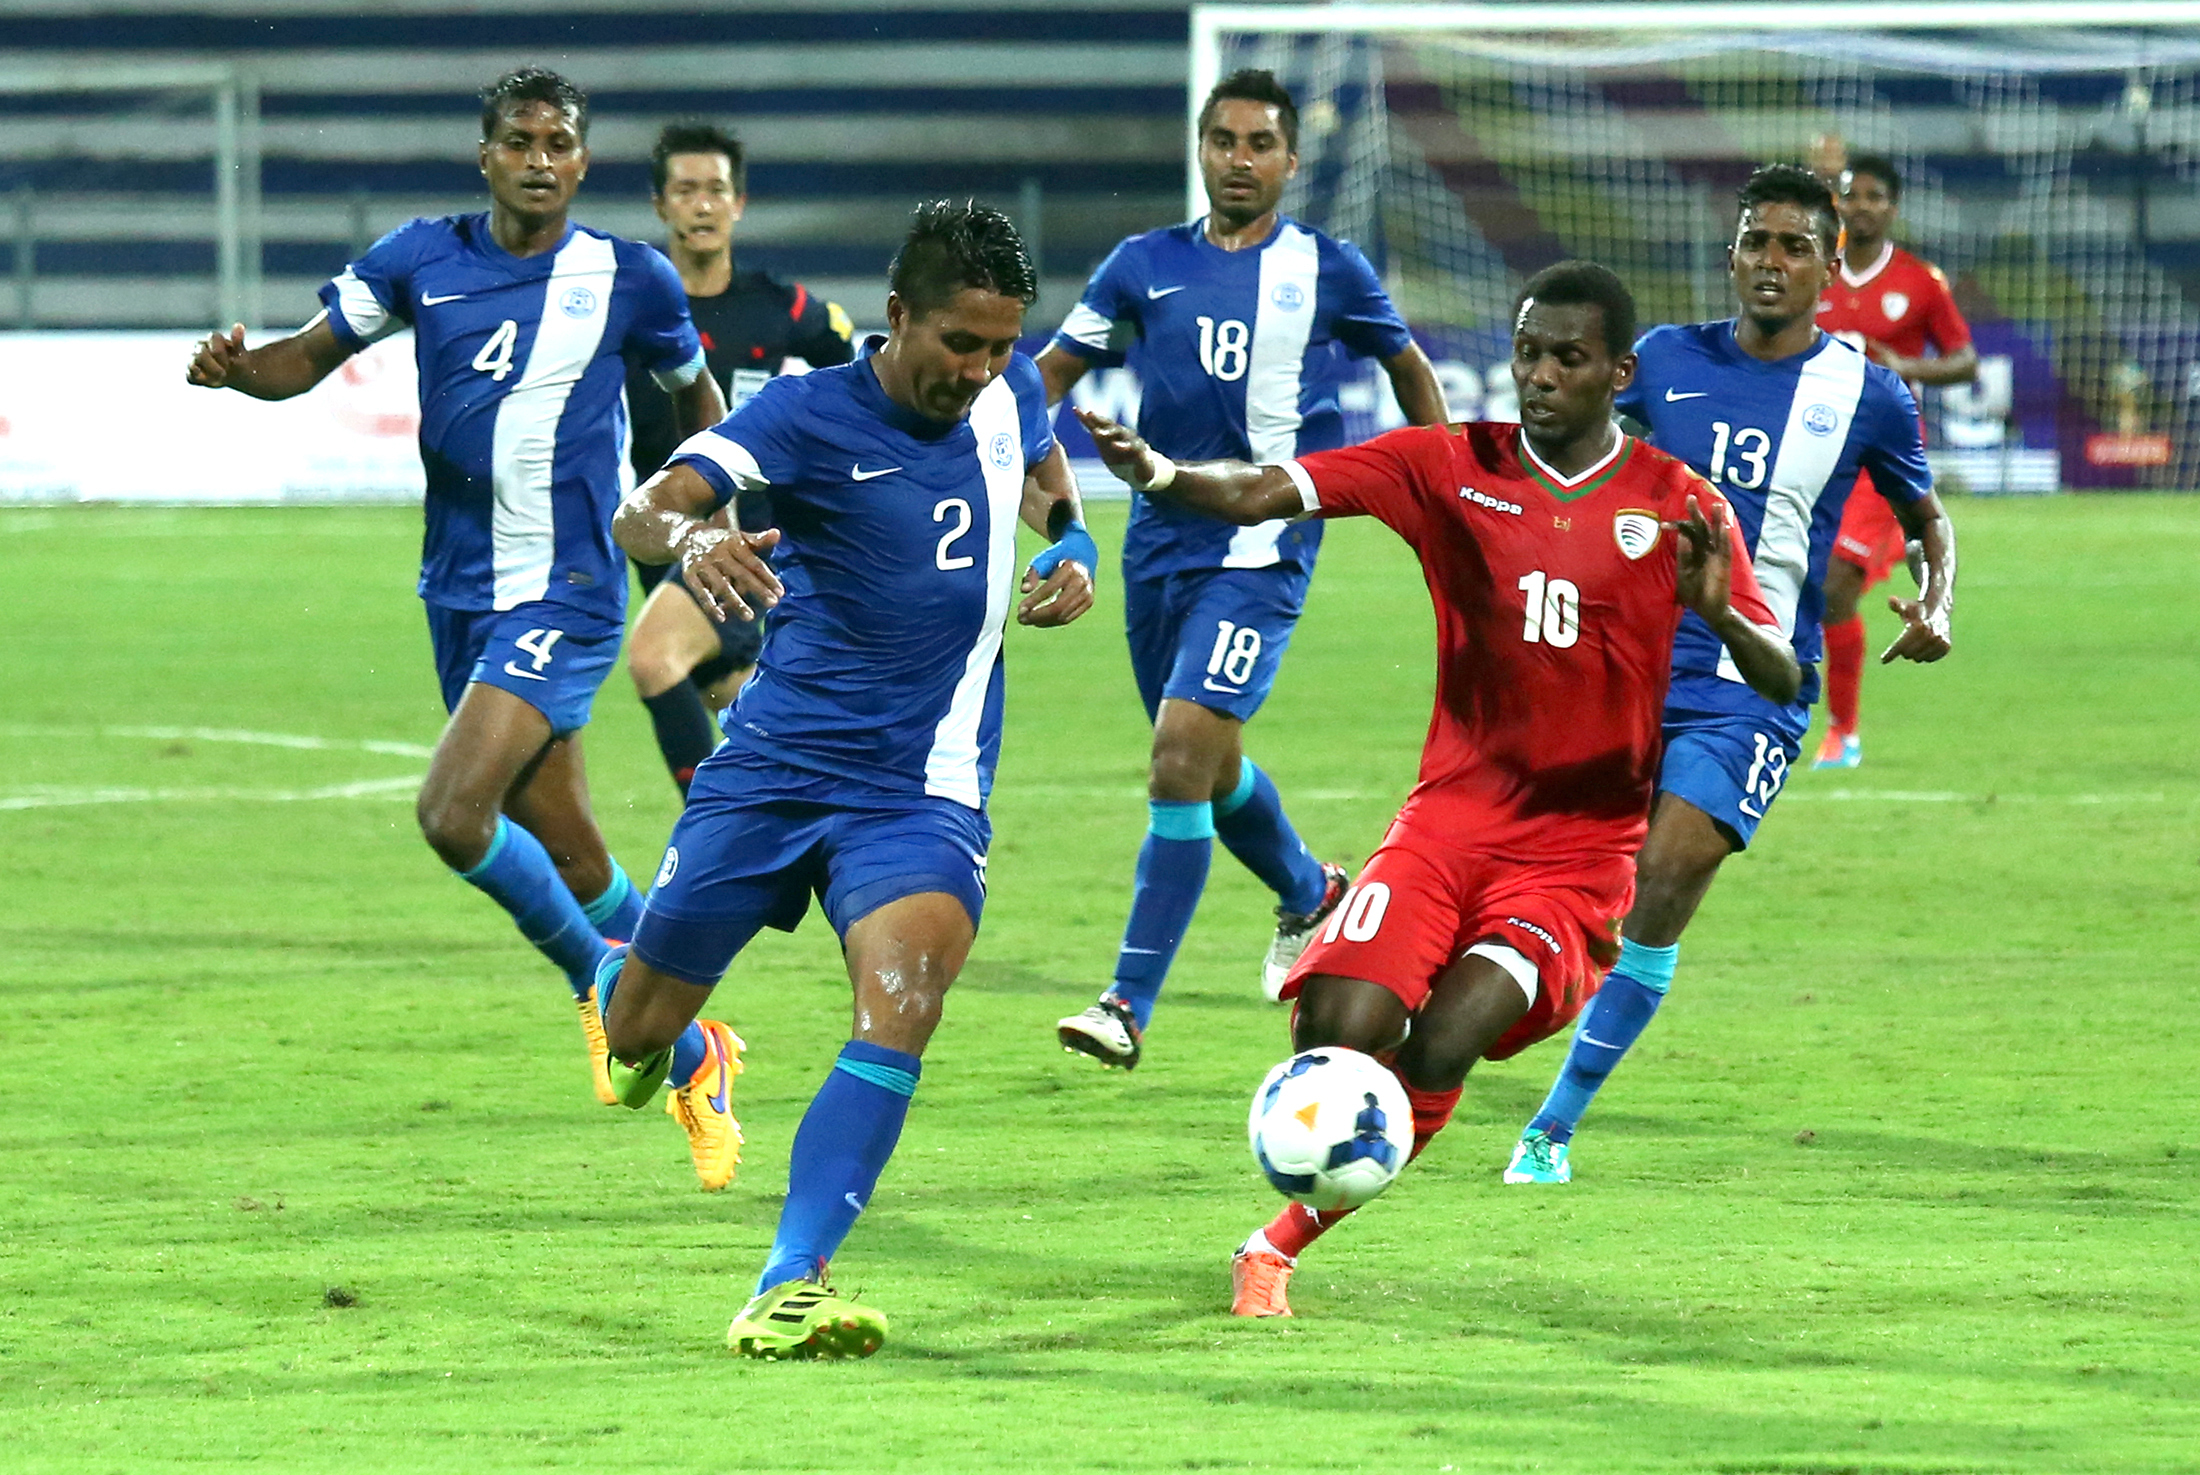 Indian football player Leihaorungbam Dhanachandra singh (L) and Oman football player Qasim said ( R) in action, during a World Cup Qualifier match against India, in Bangalore, India 11 June 2015.